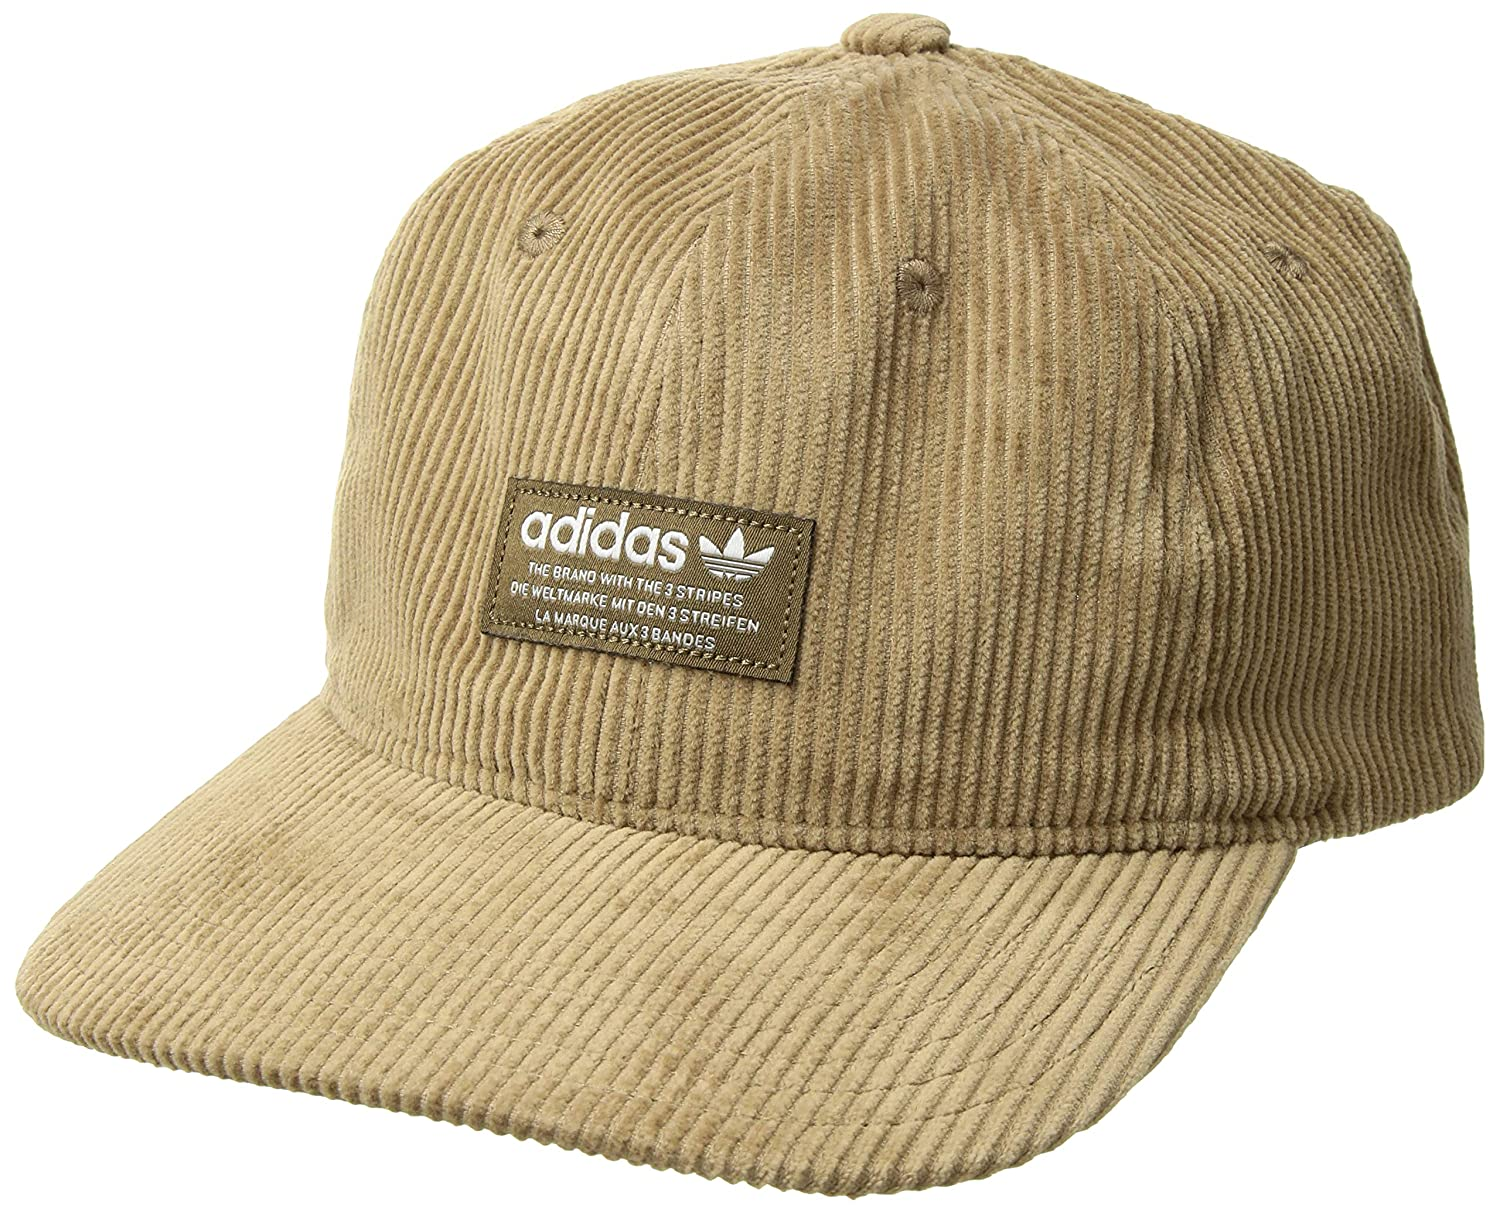 e4efb1a6951 Amazon.com  adidas Men s Originals Wide Wale Corduroy Relaxed Adjustable Strapback  Cap